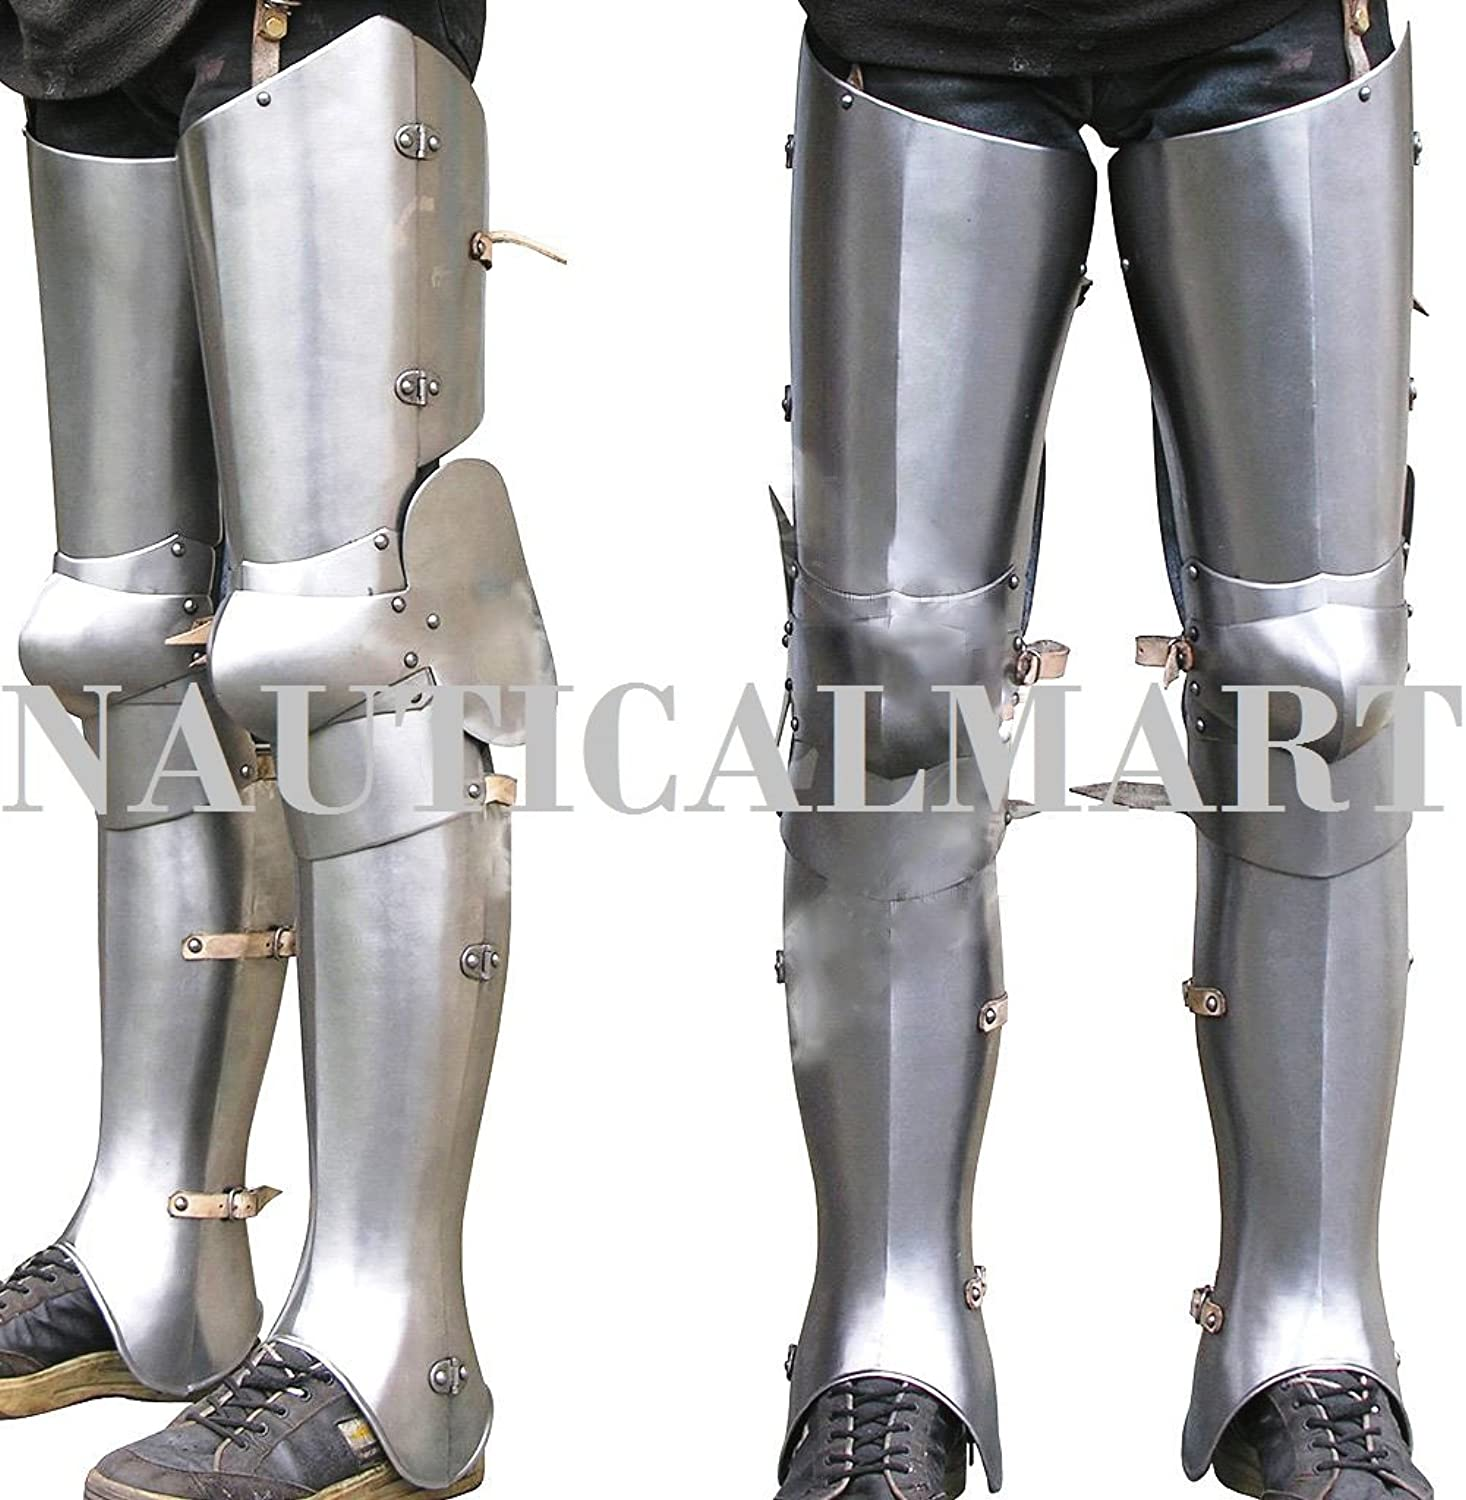 NAUTICALMART SCA LARP Complete Halloween Gothic Fluted Upper Leg Knees and Greaves Medieval Leg Guards